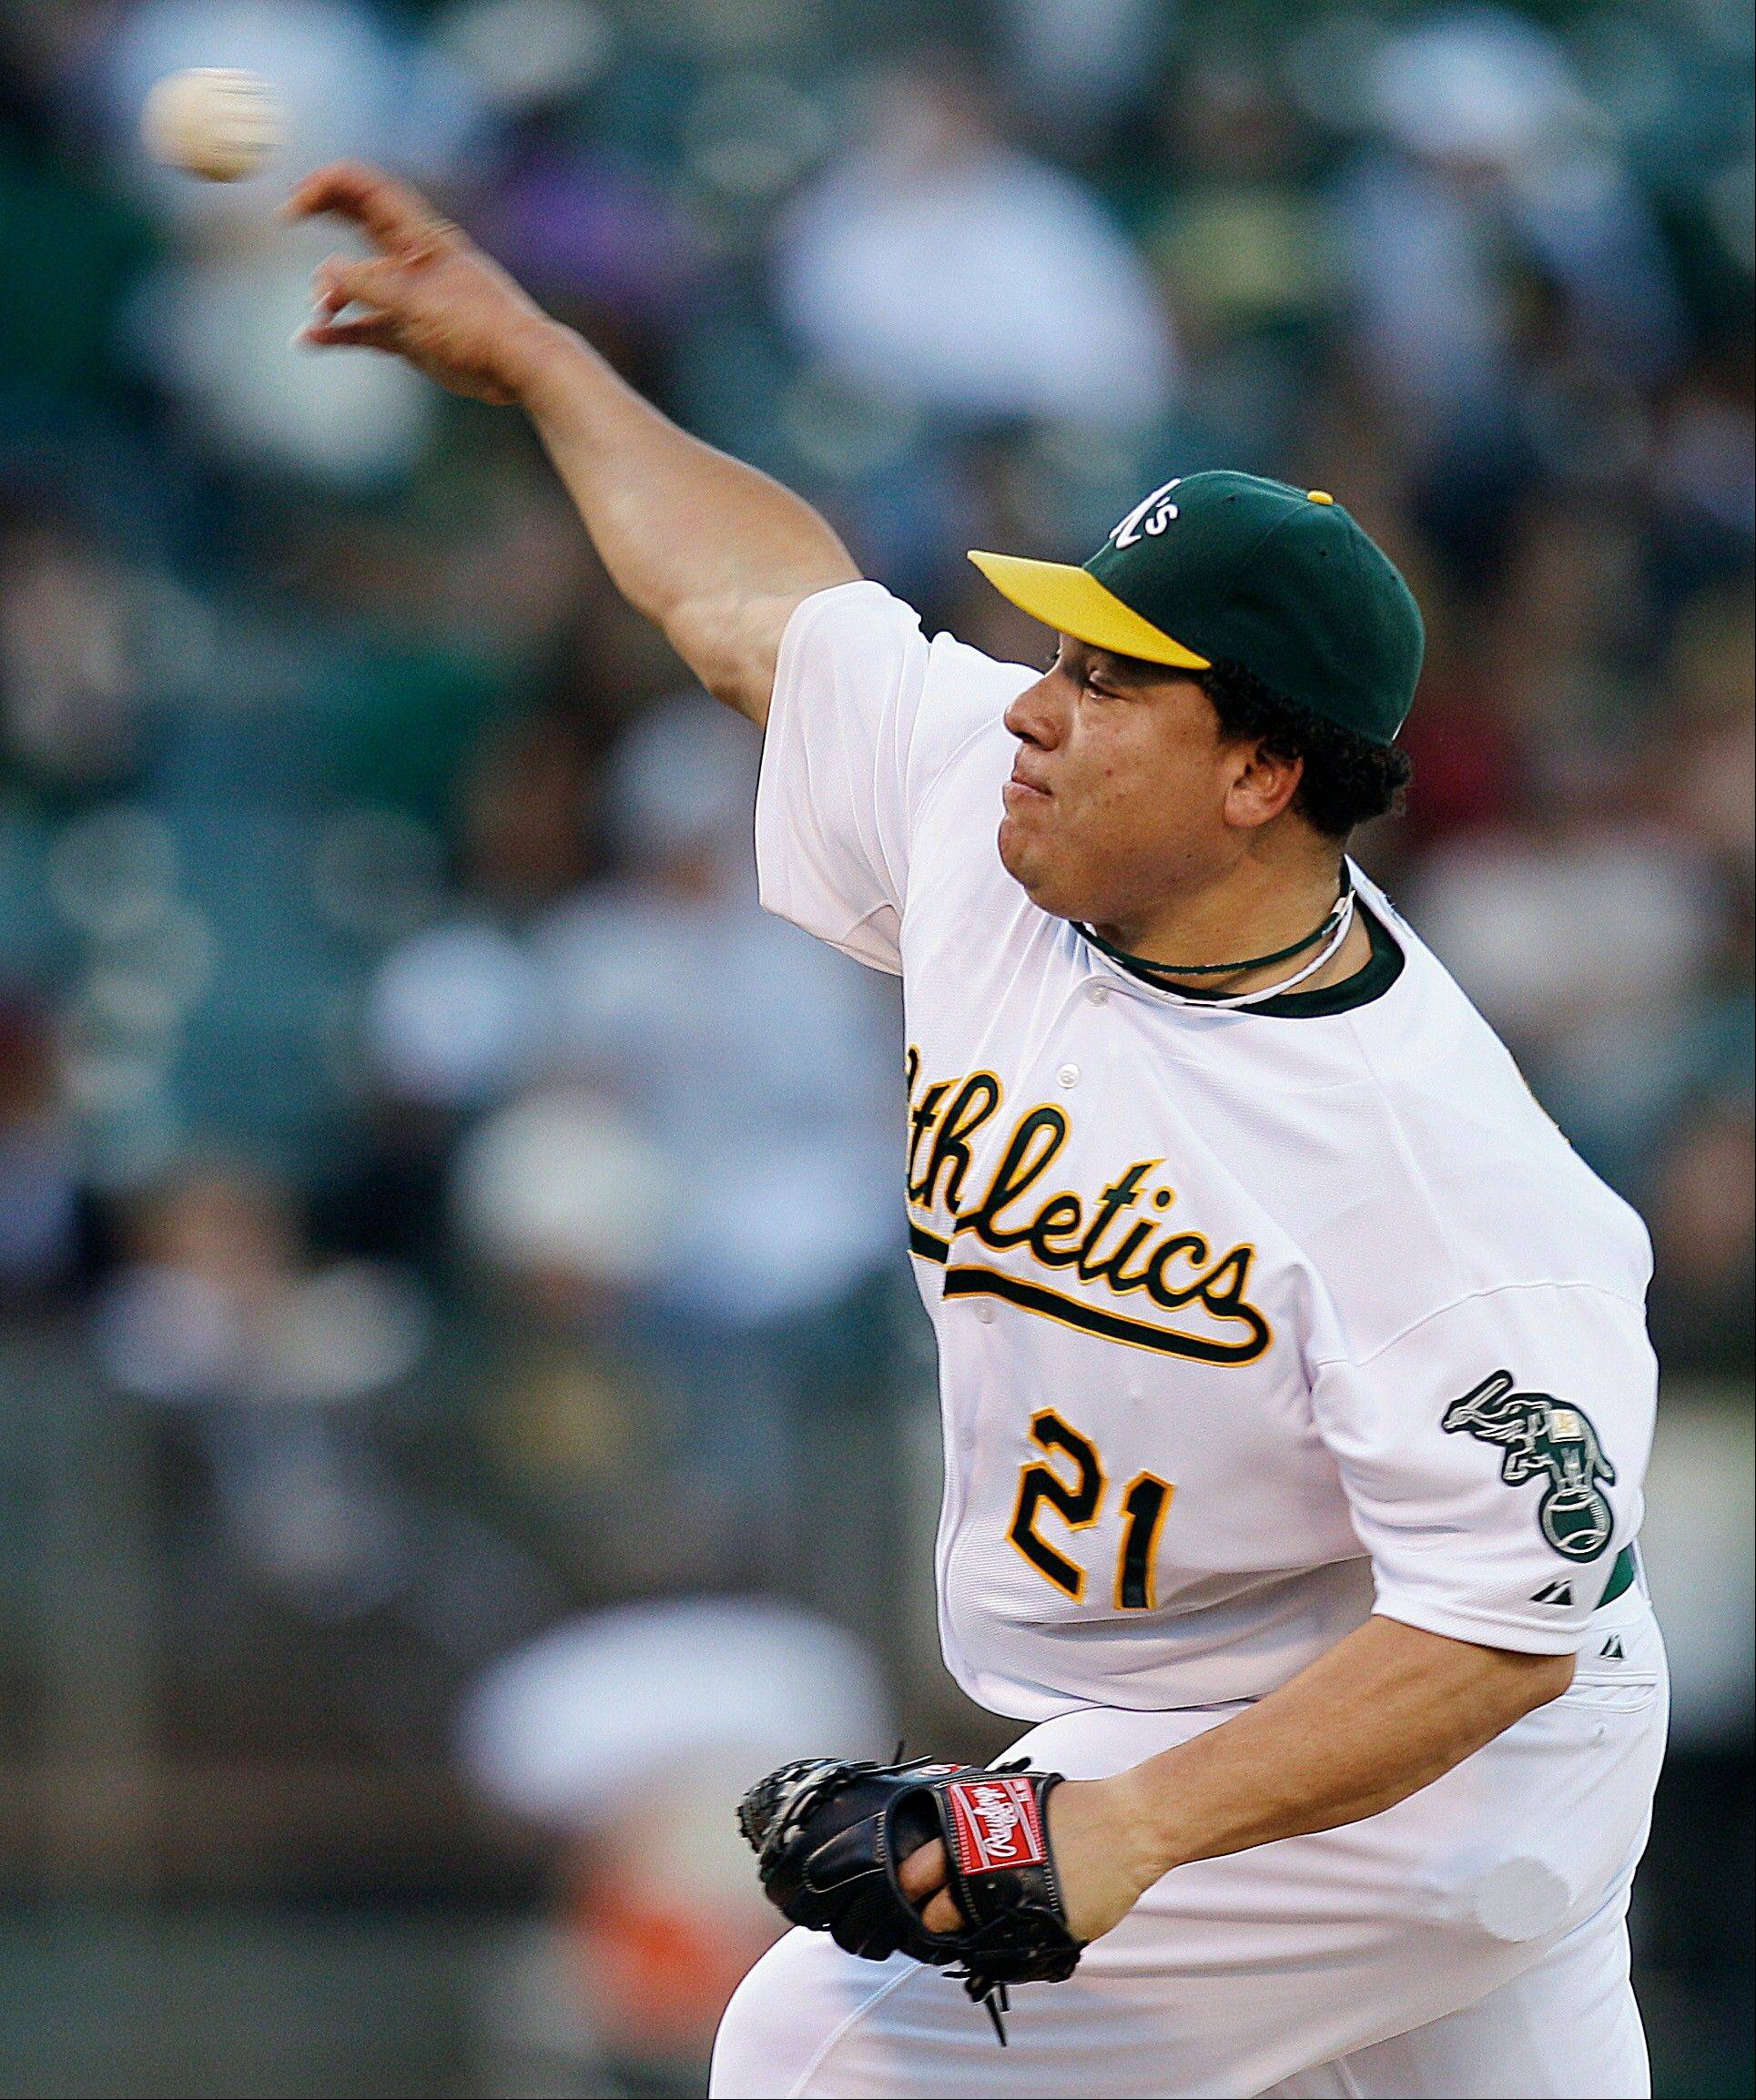 Oakland starter Bartolo Colon allowed four hits over seven innings Tuesday at home against the Angels.